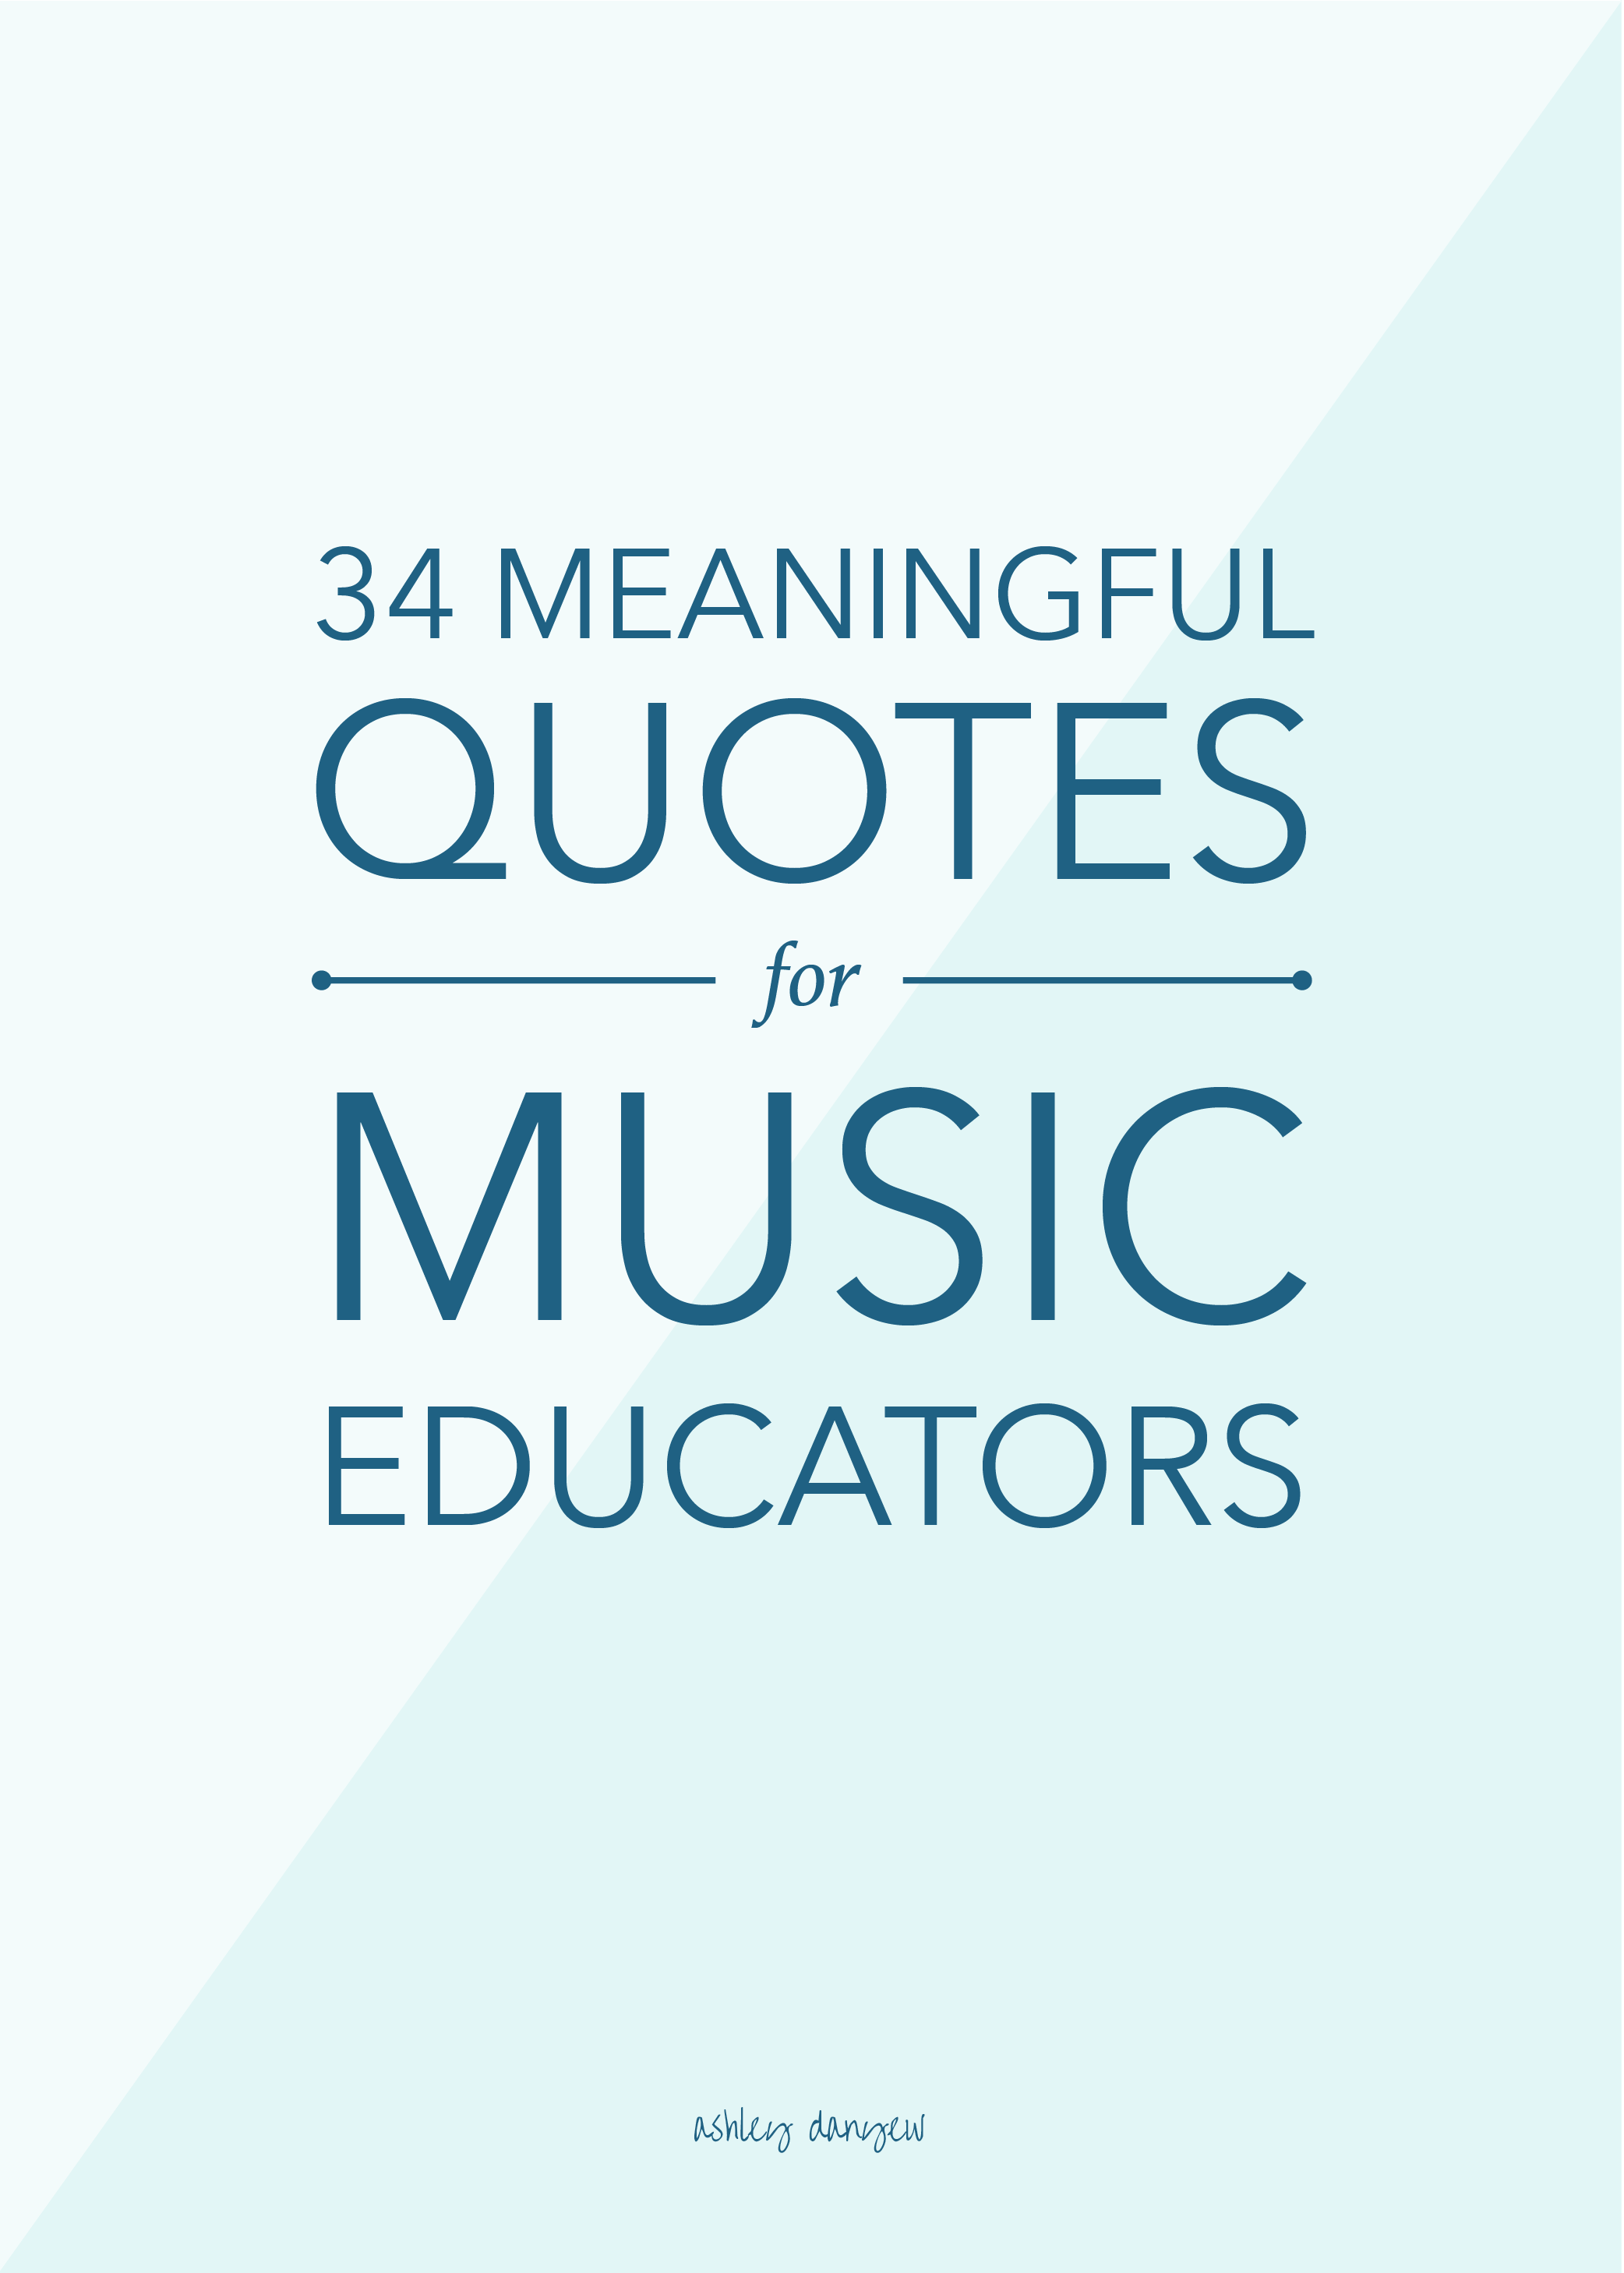 34 Meaningful Quotes for Music Educators | Ashley Danyew